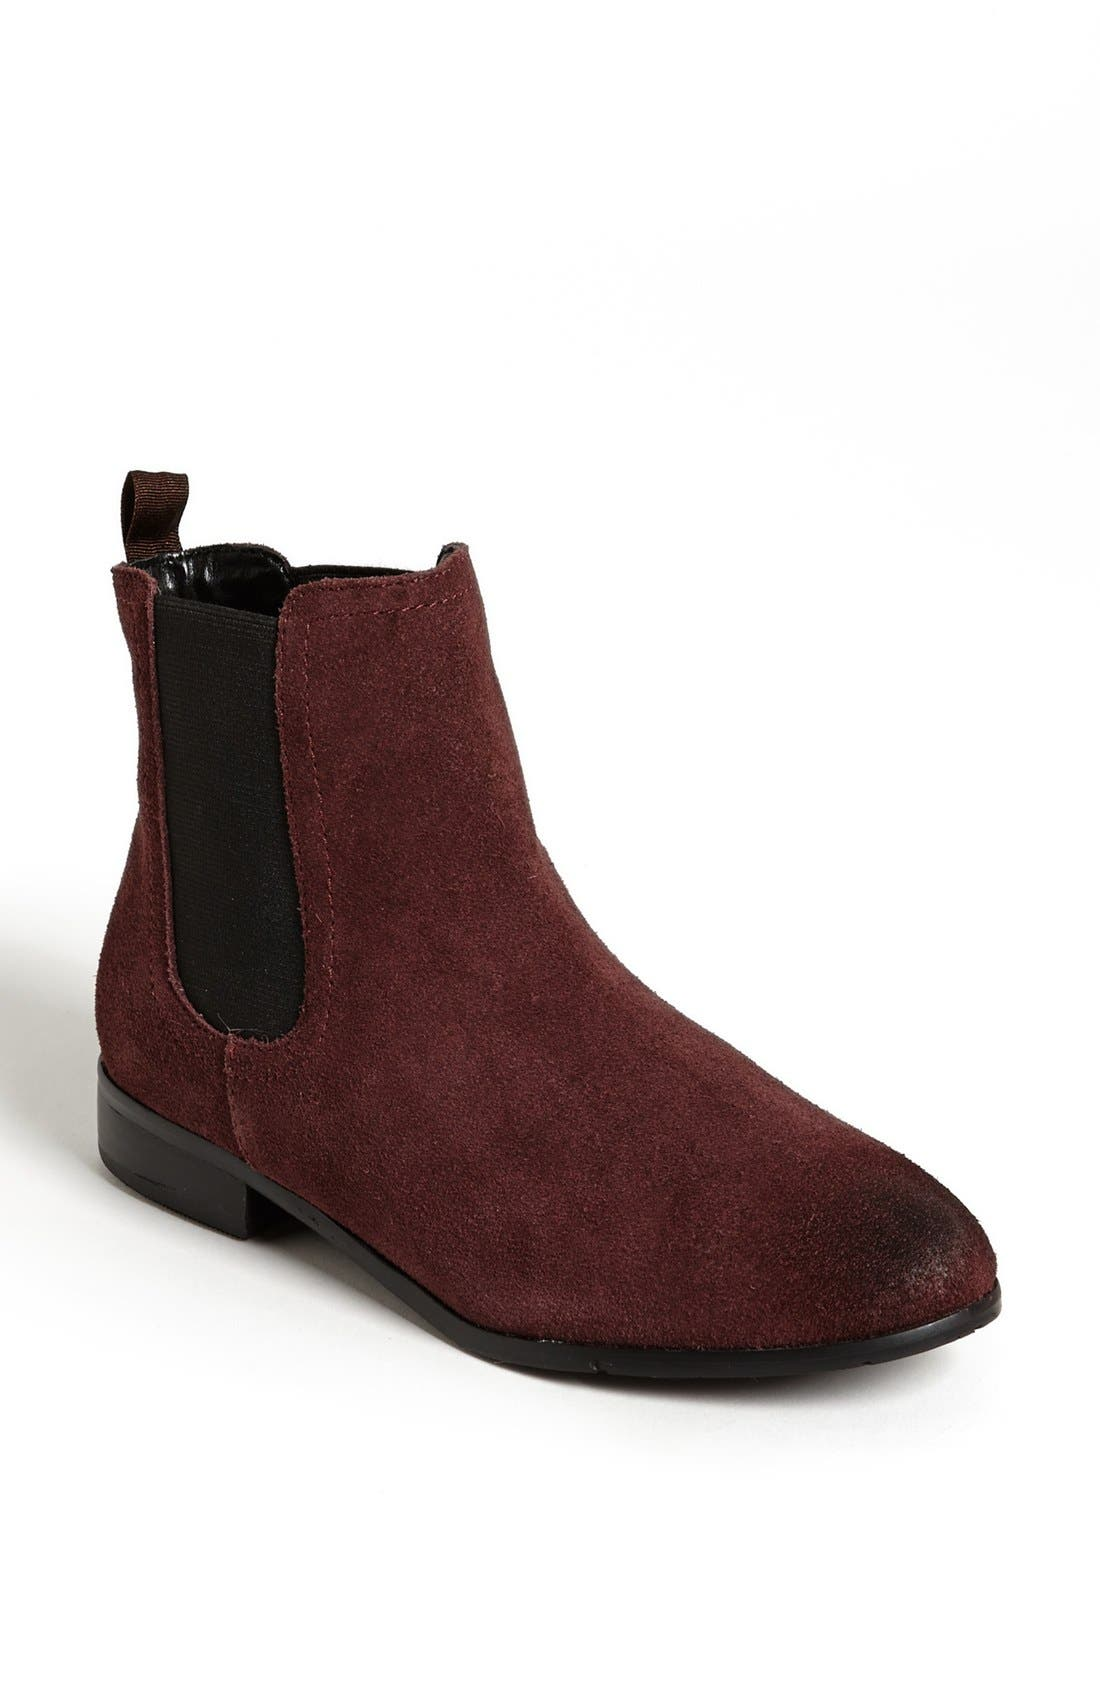 Alternate Image 1 Selected - DV by Dolce Vita 'Coraline' Boot